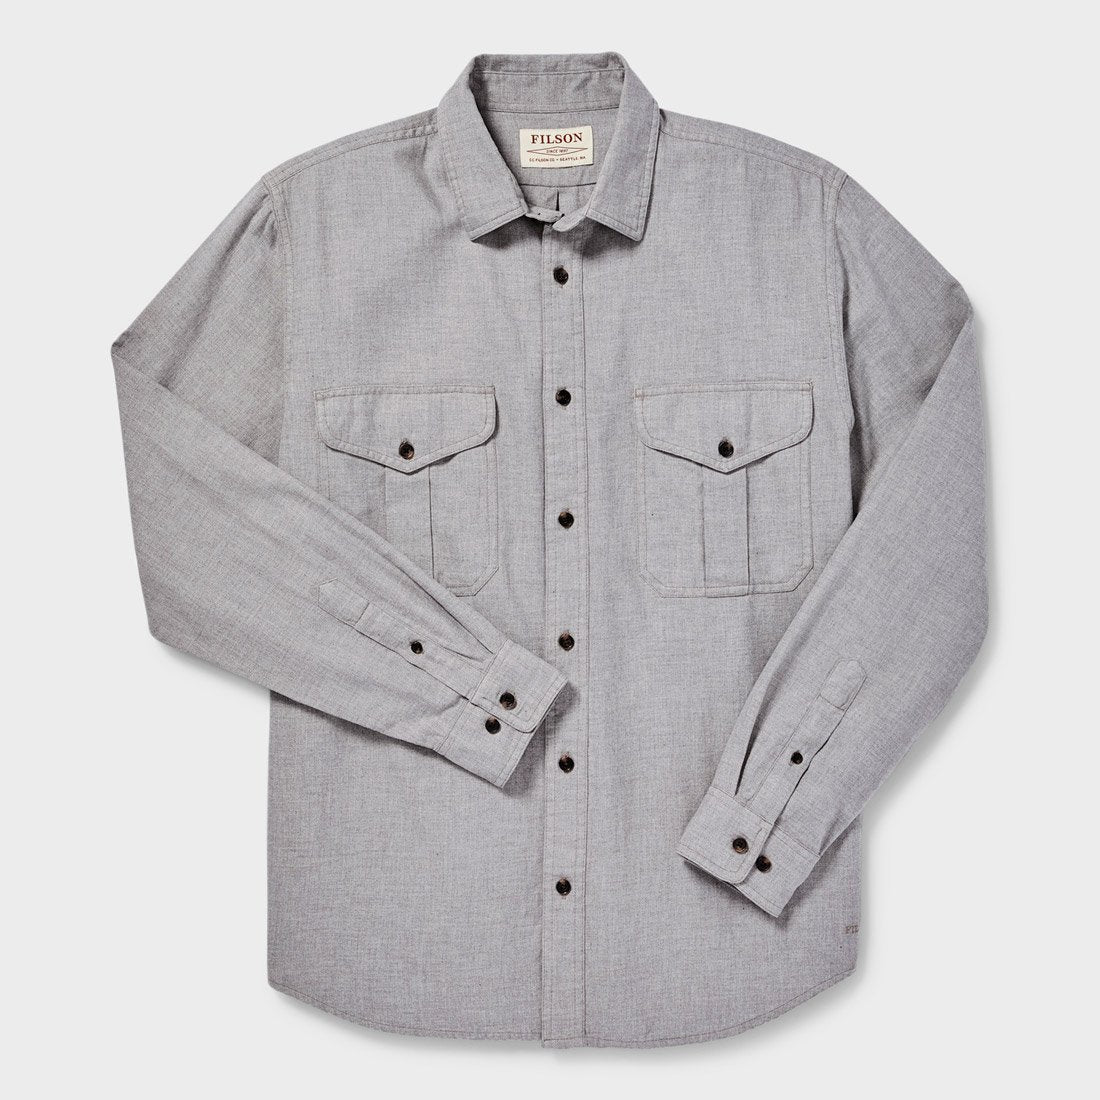 Filson Lightweight Alaskan Guide Shirt Heather Grey